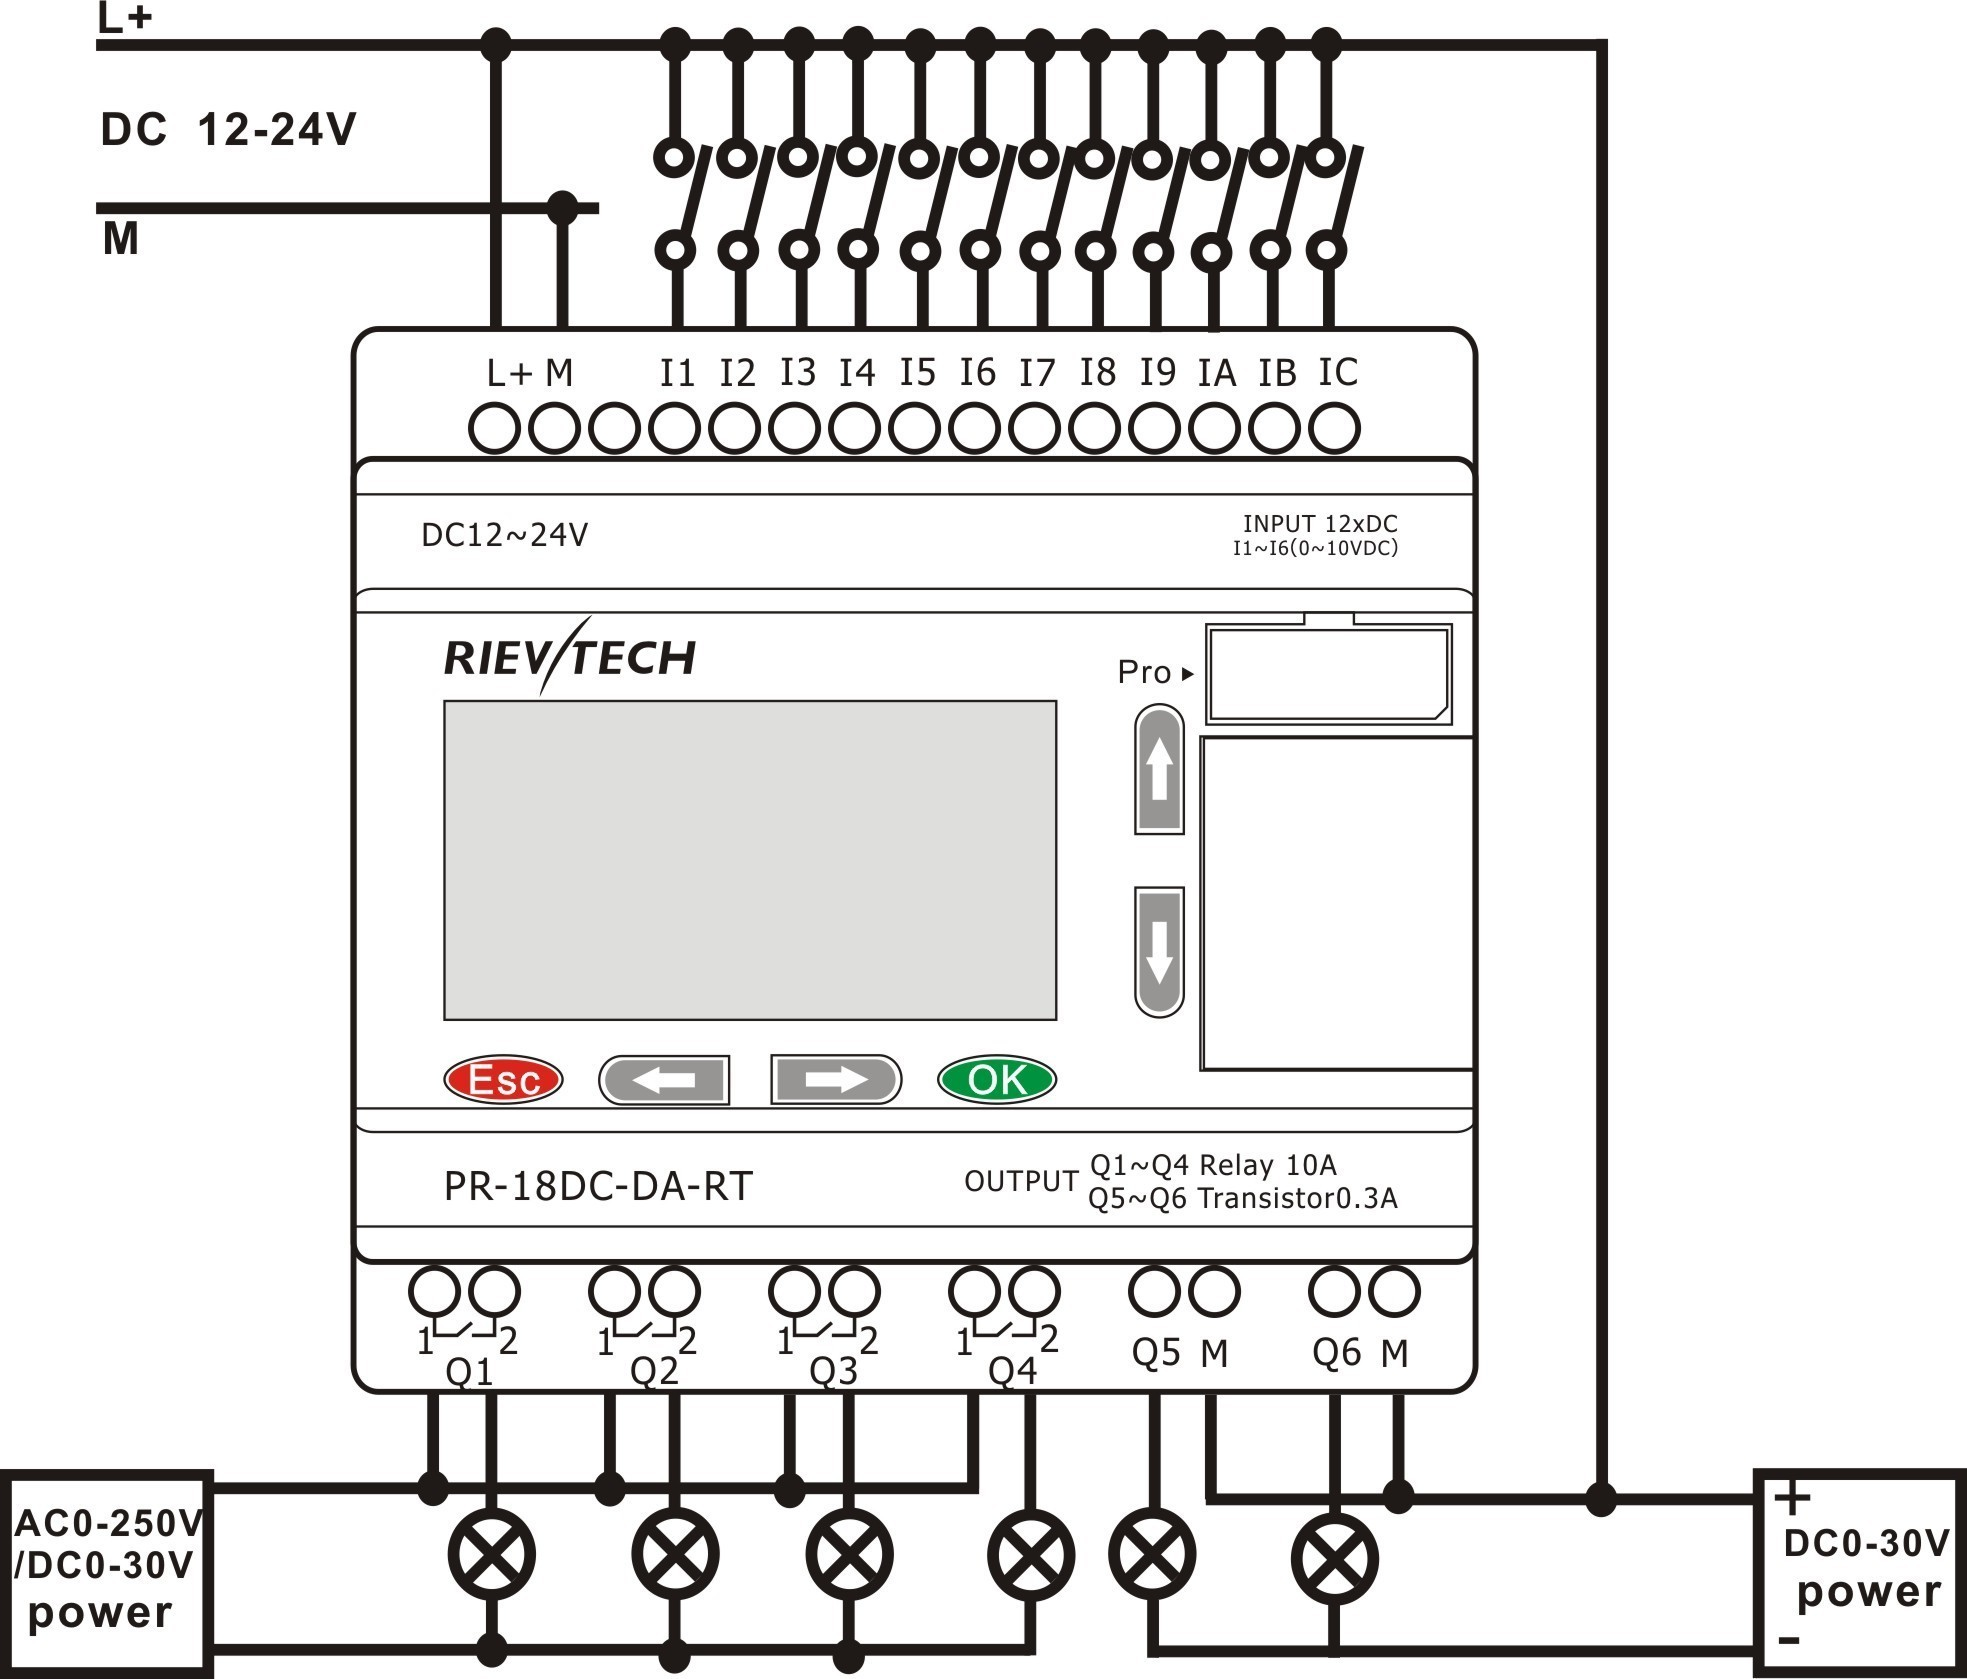 Plcm7500 wiring diagram wiring diagram image wiring diagram for plc refrence plc panel wiring diagram wiring schematic database asfbconference2016 Choice Image